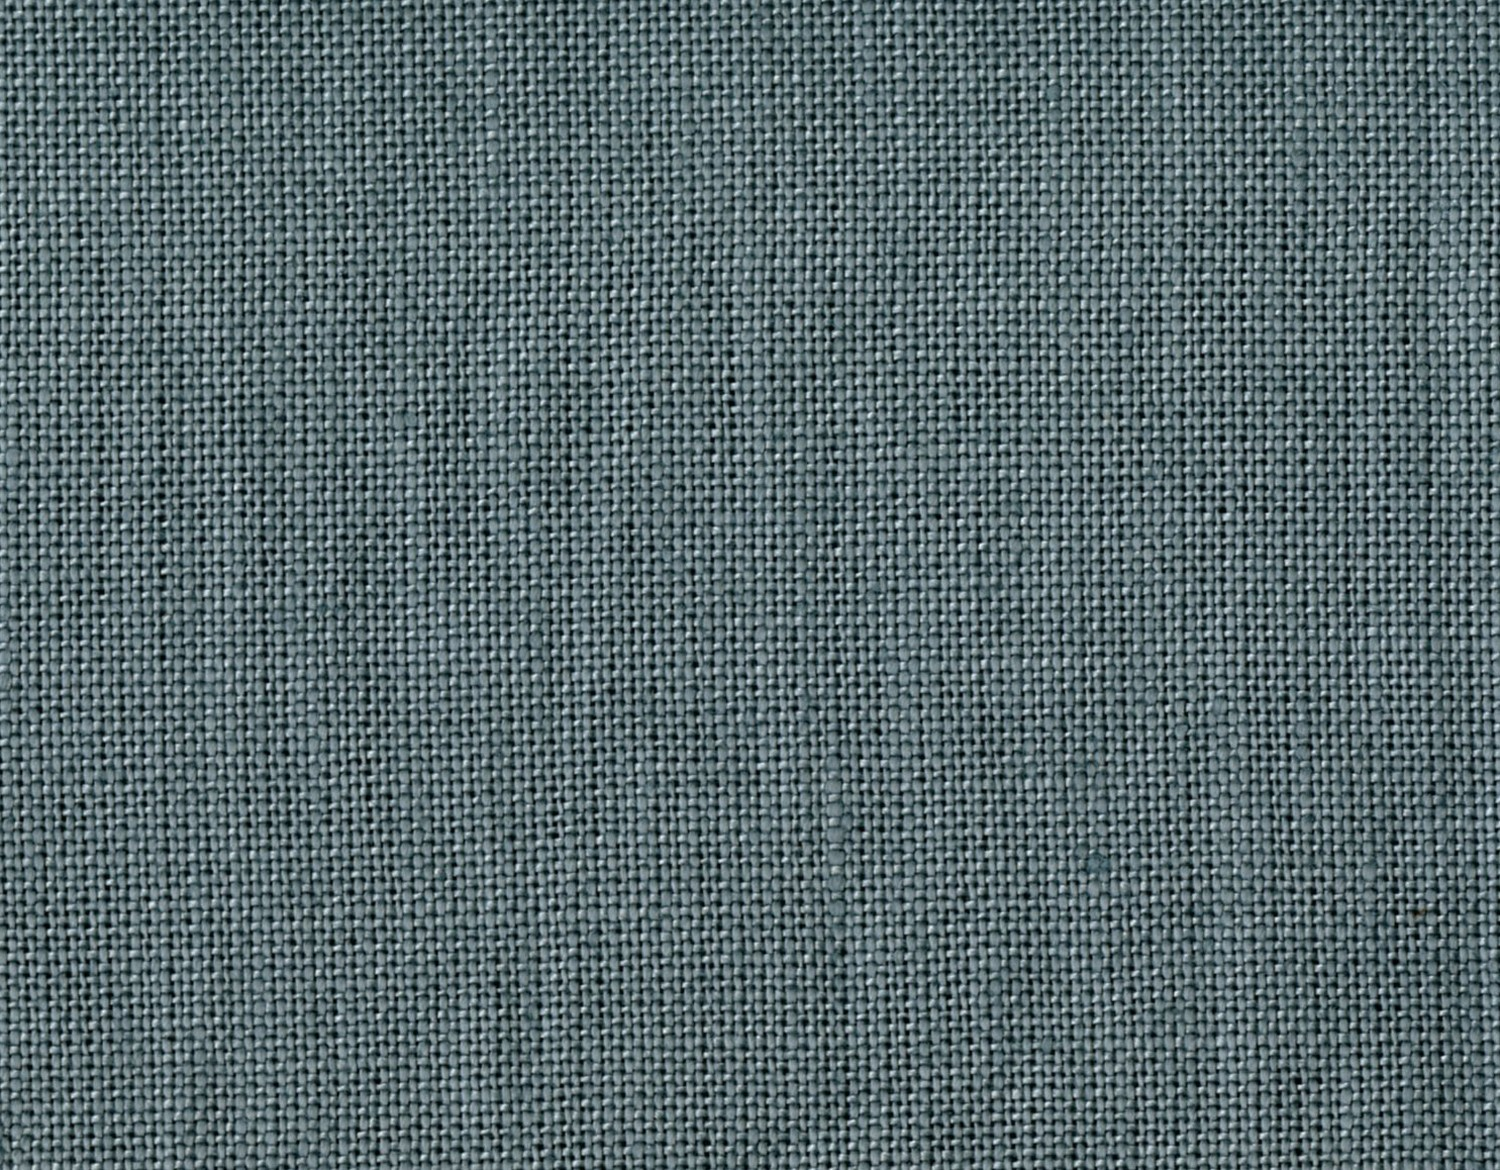 Solid Color Linen Fabric Penafiel By Kohro